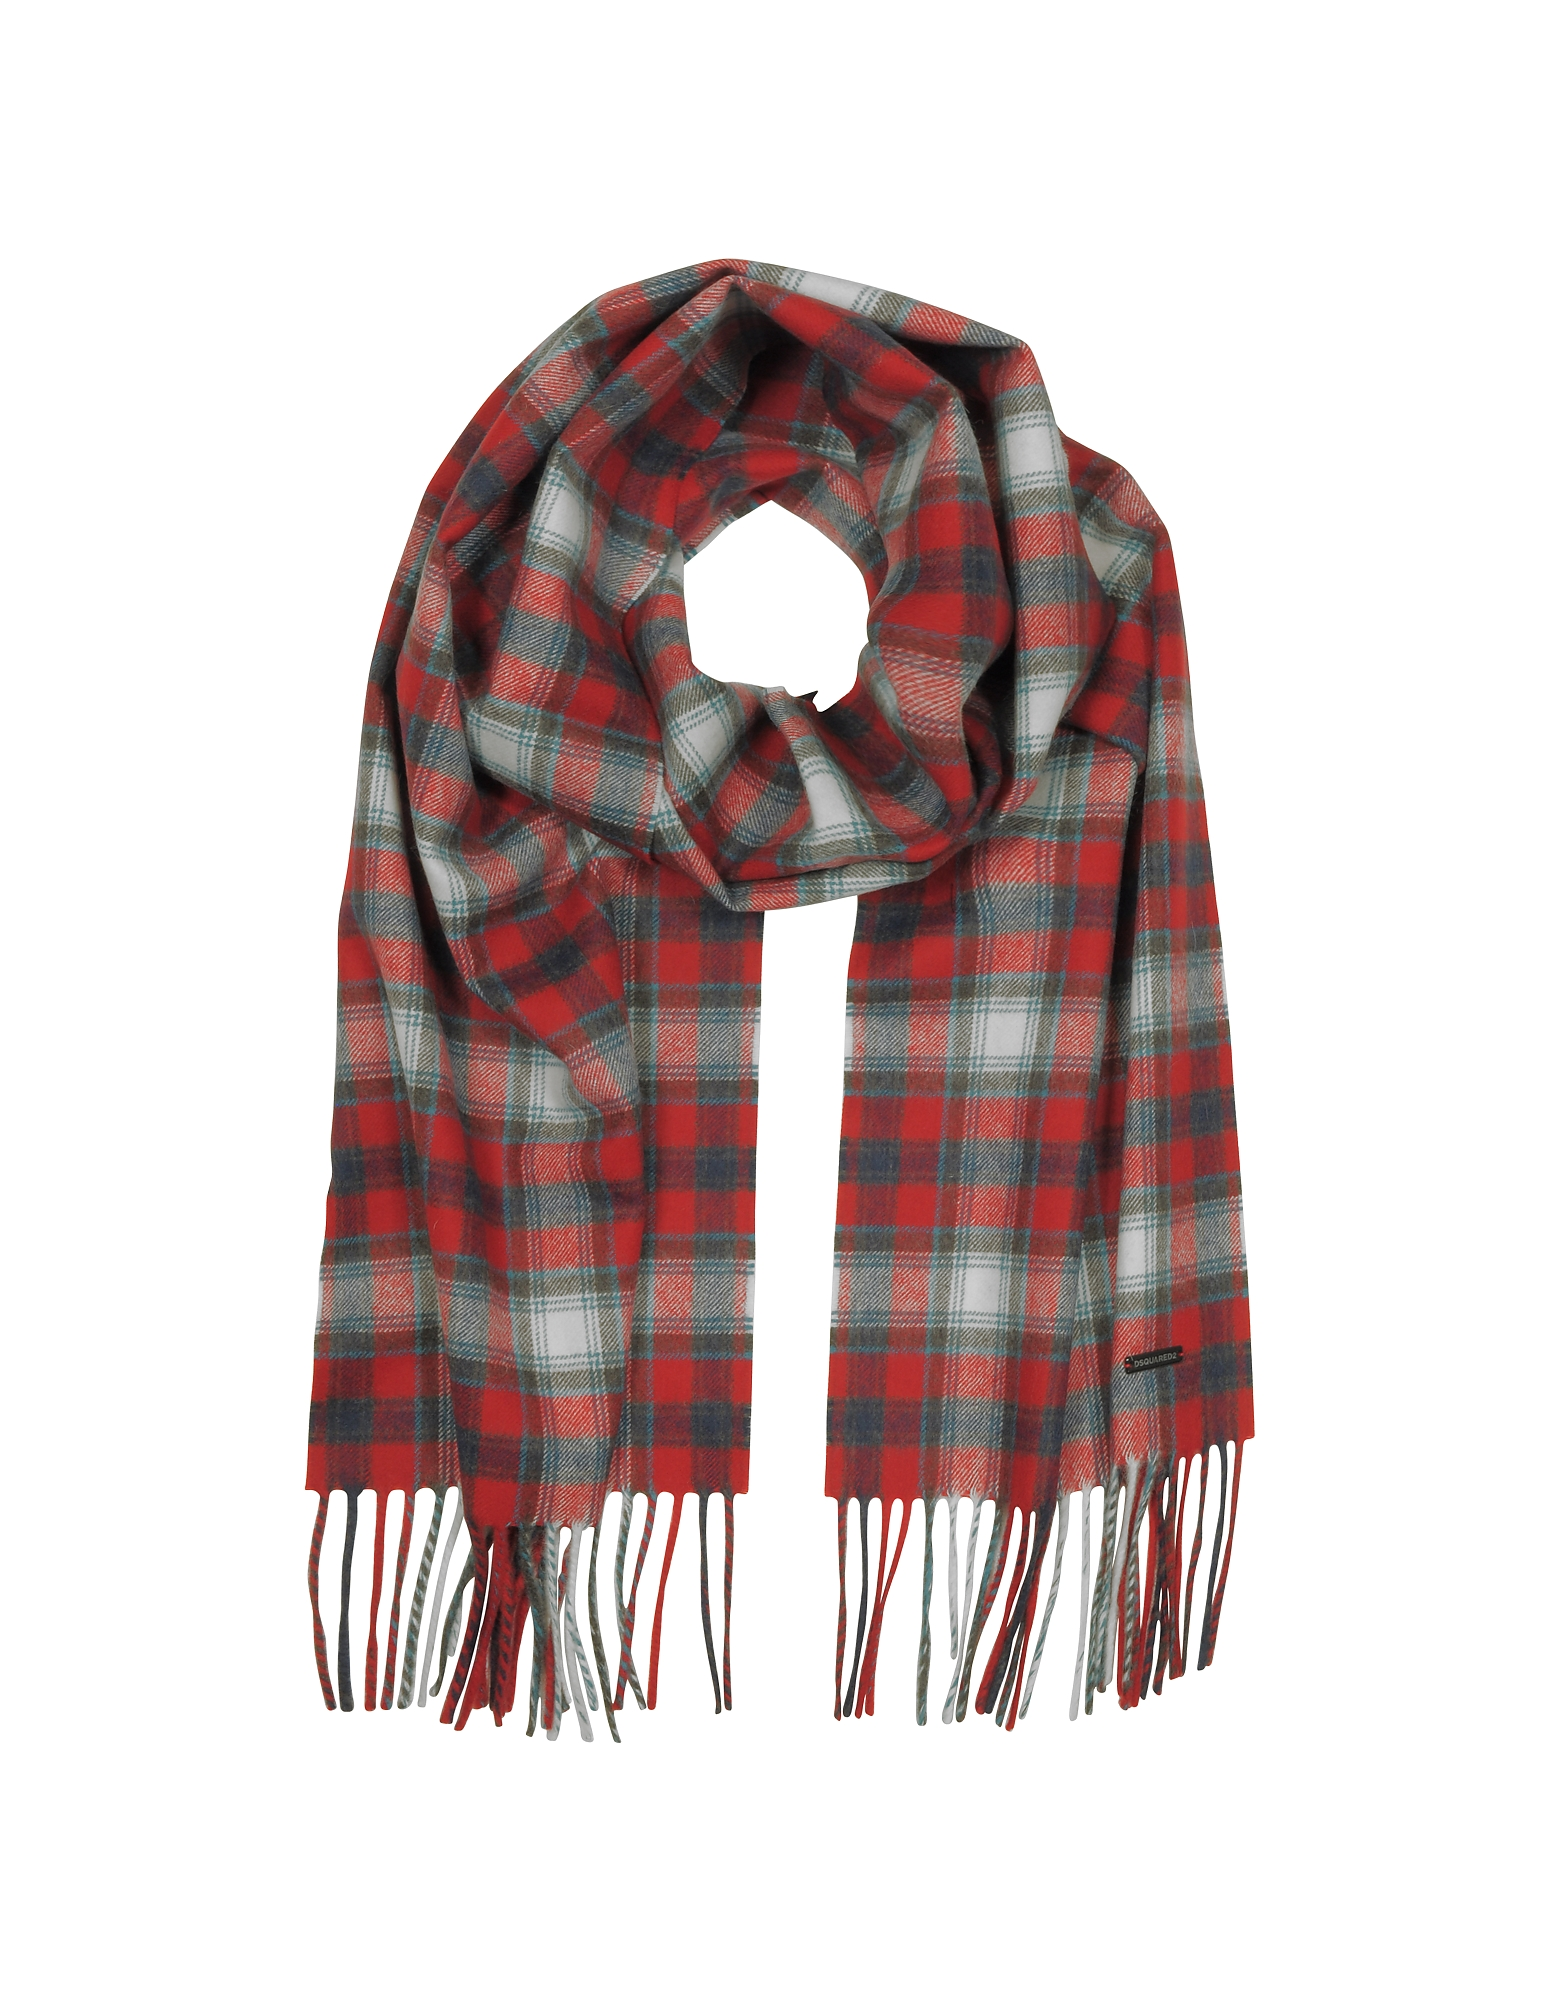 DSquared2 Men's Scarves, Red Checked Wool Blend Men's Scarf w/Fringes